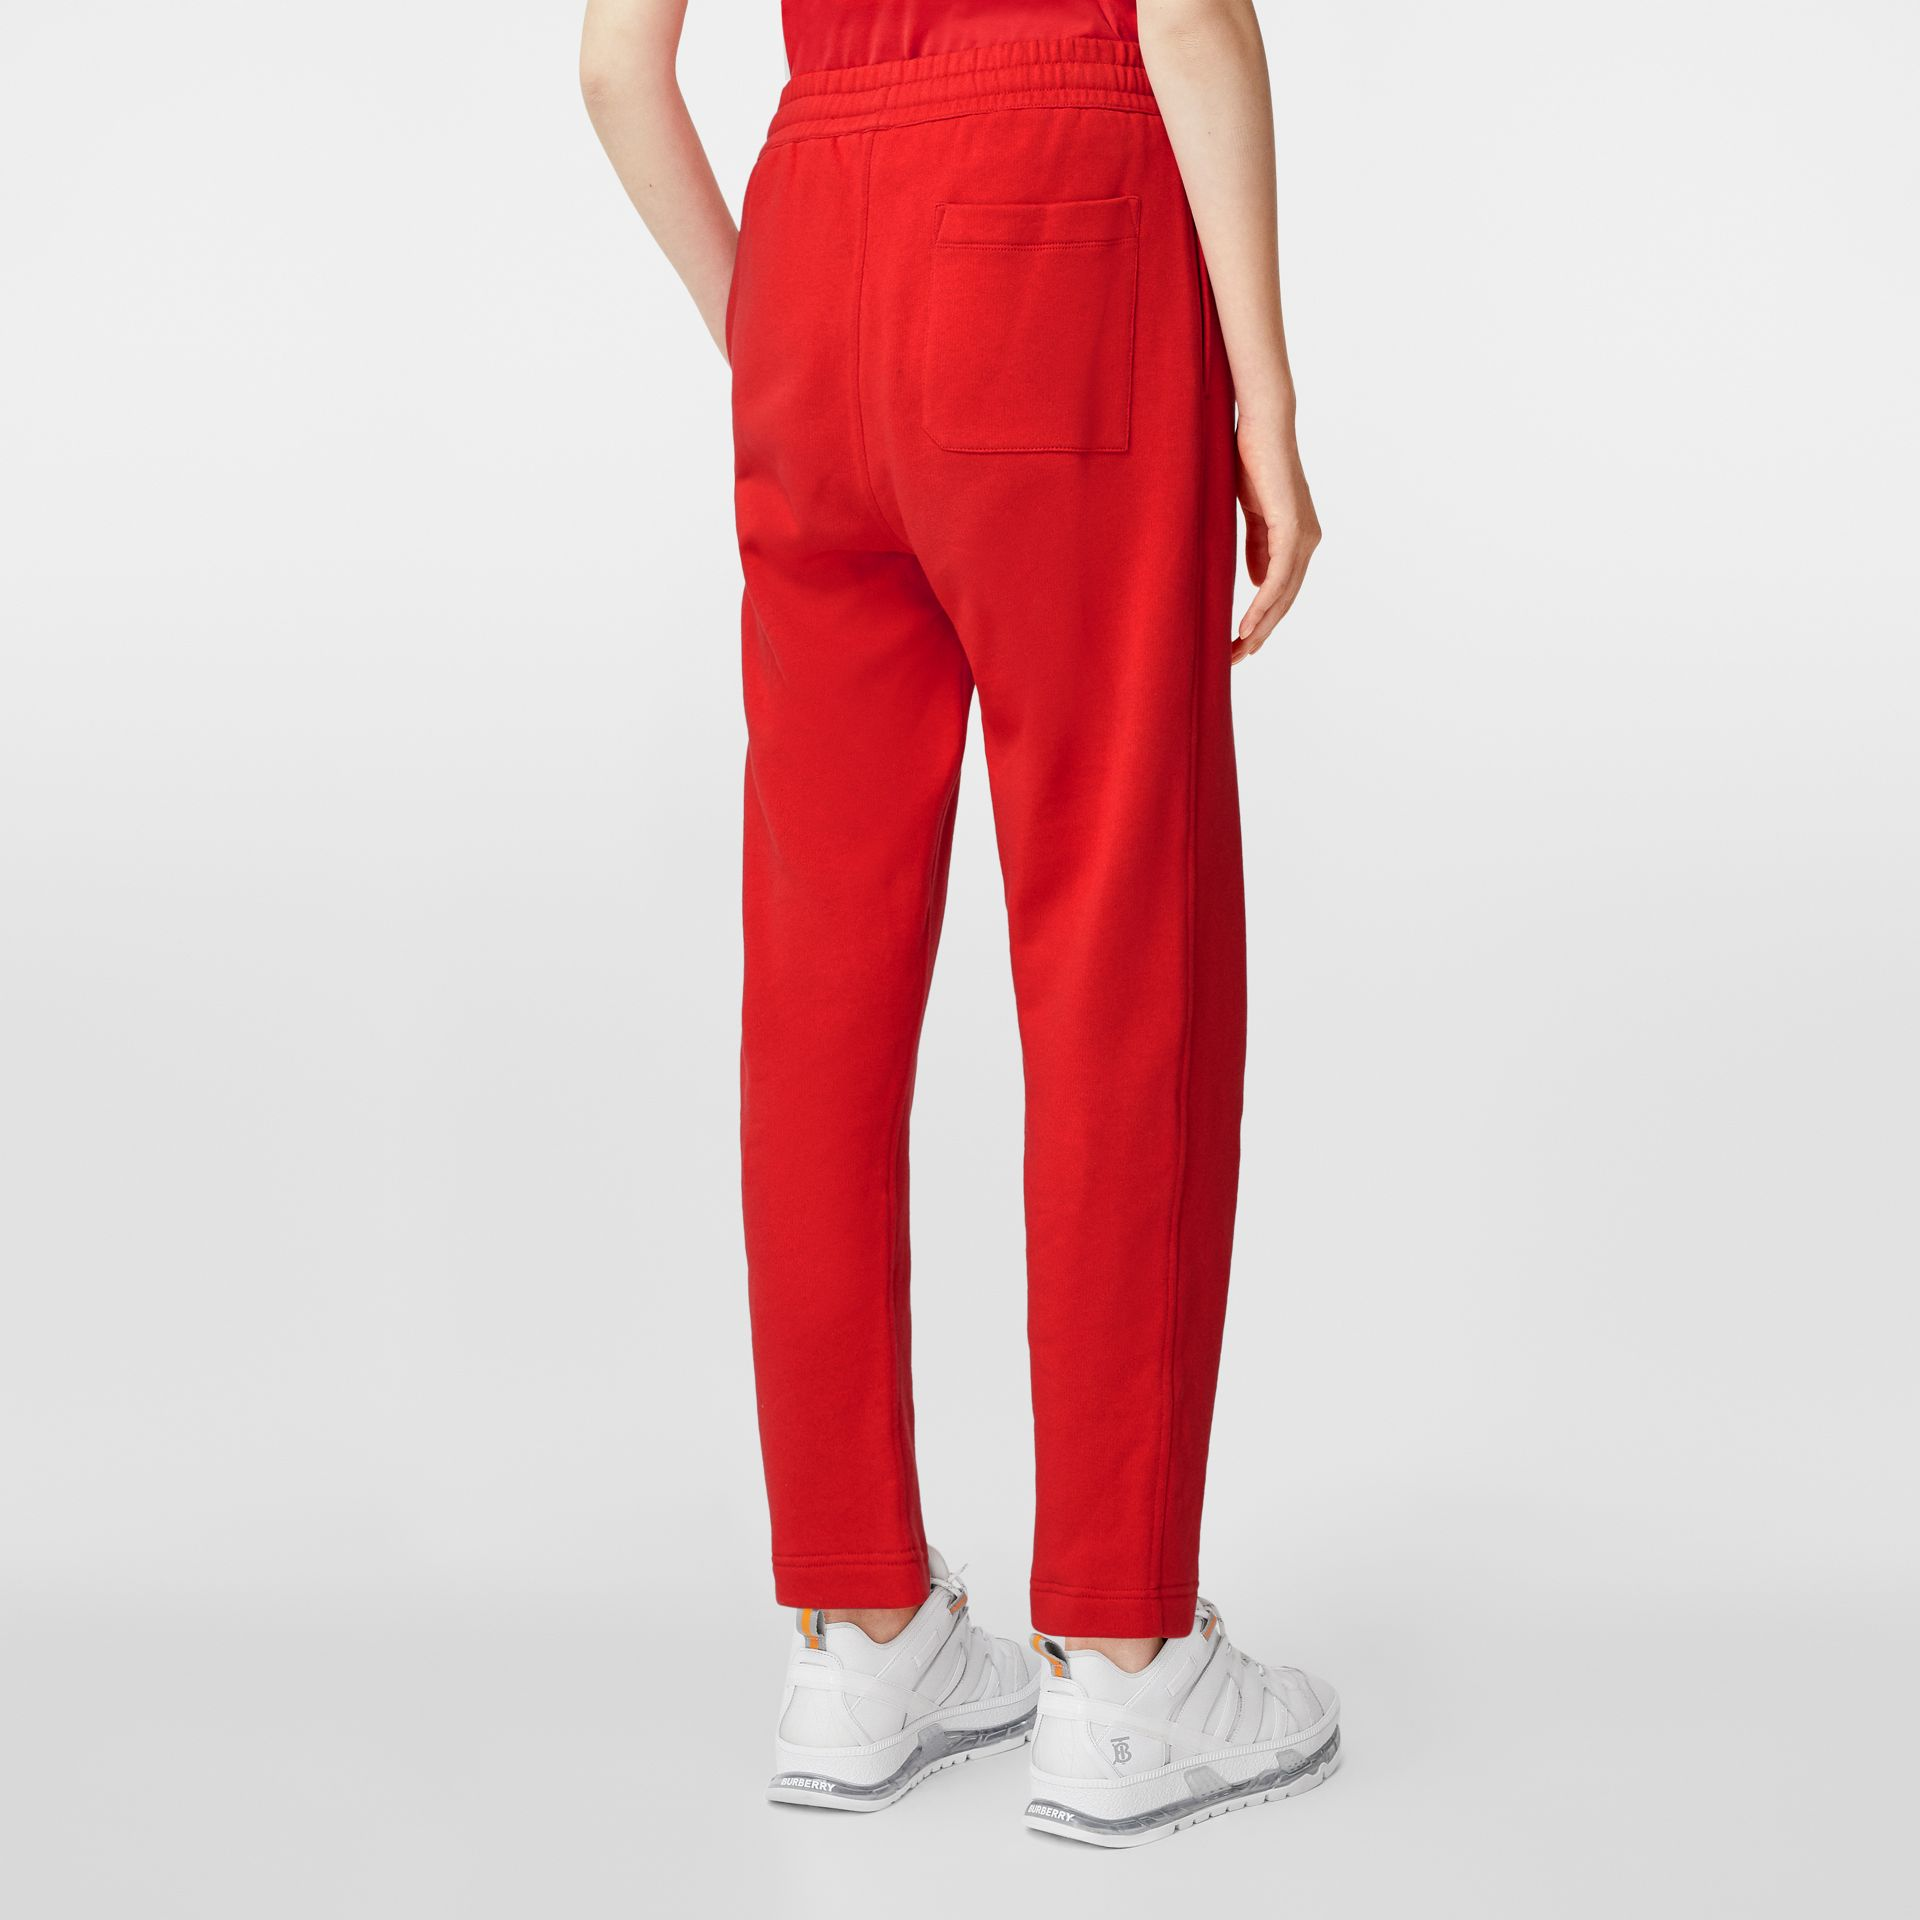 Monogram Motif Cotton Trackpants in Bright Red - Women | Burberry - gallery image 2